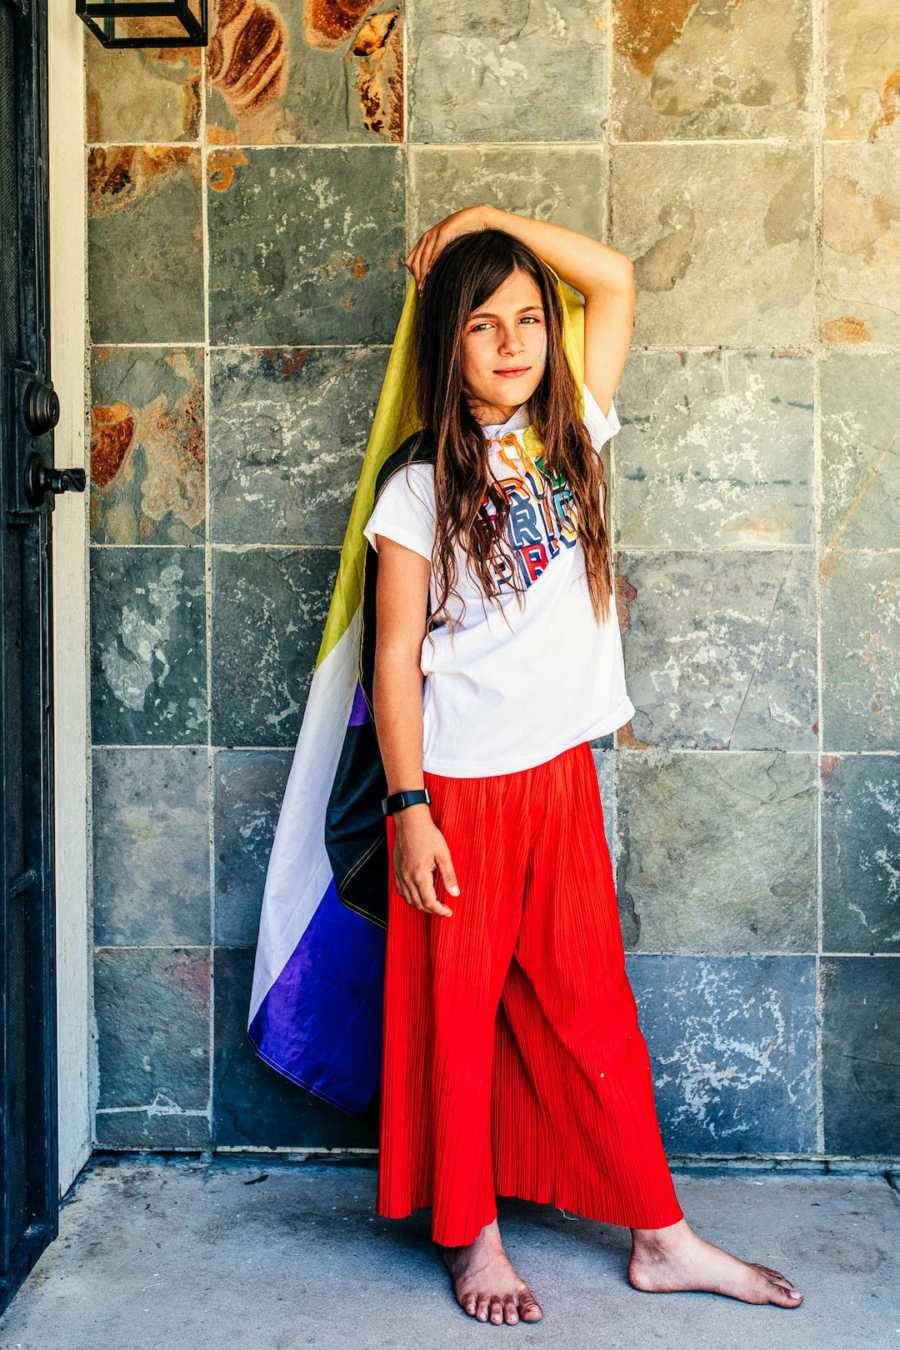 Child wearing rainbow colors and Pride shirt posing in front of stone wall